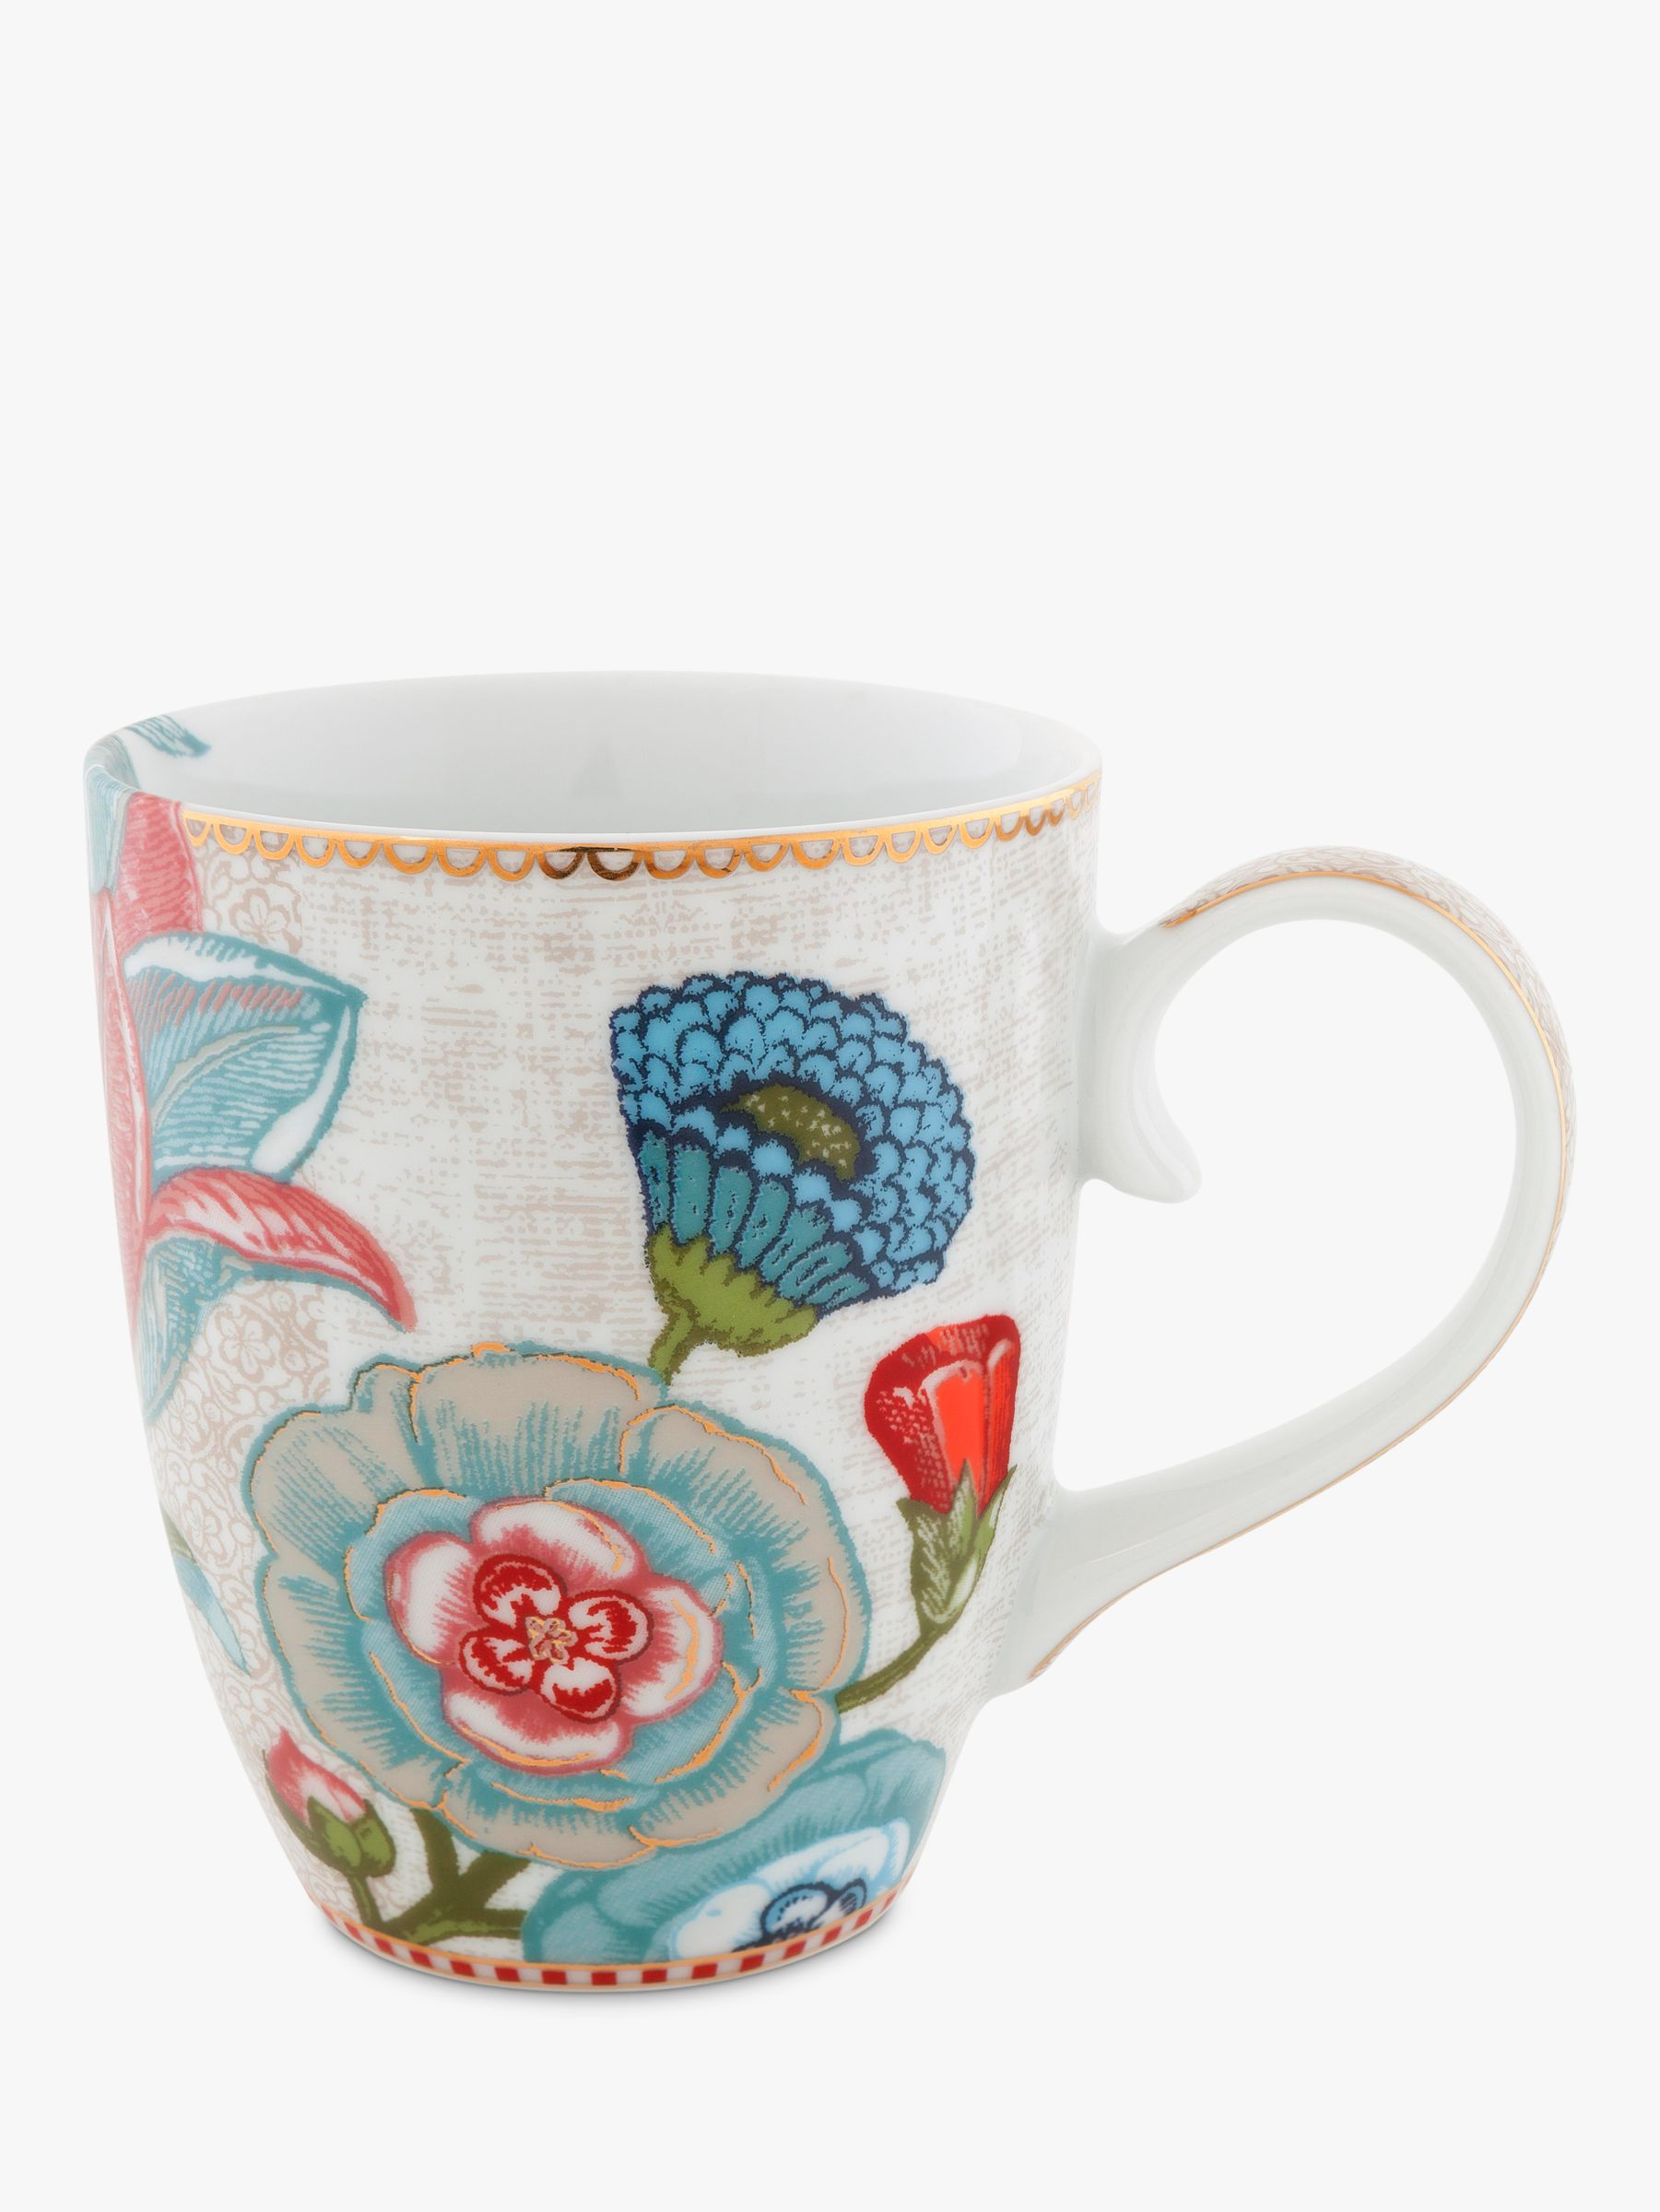 PiP Studio PiP Studio Spring to Life Large Mug, Cream